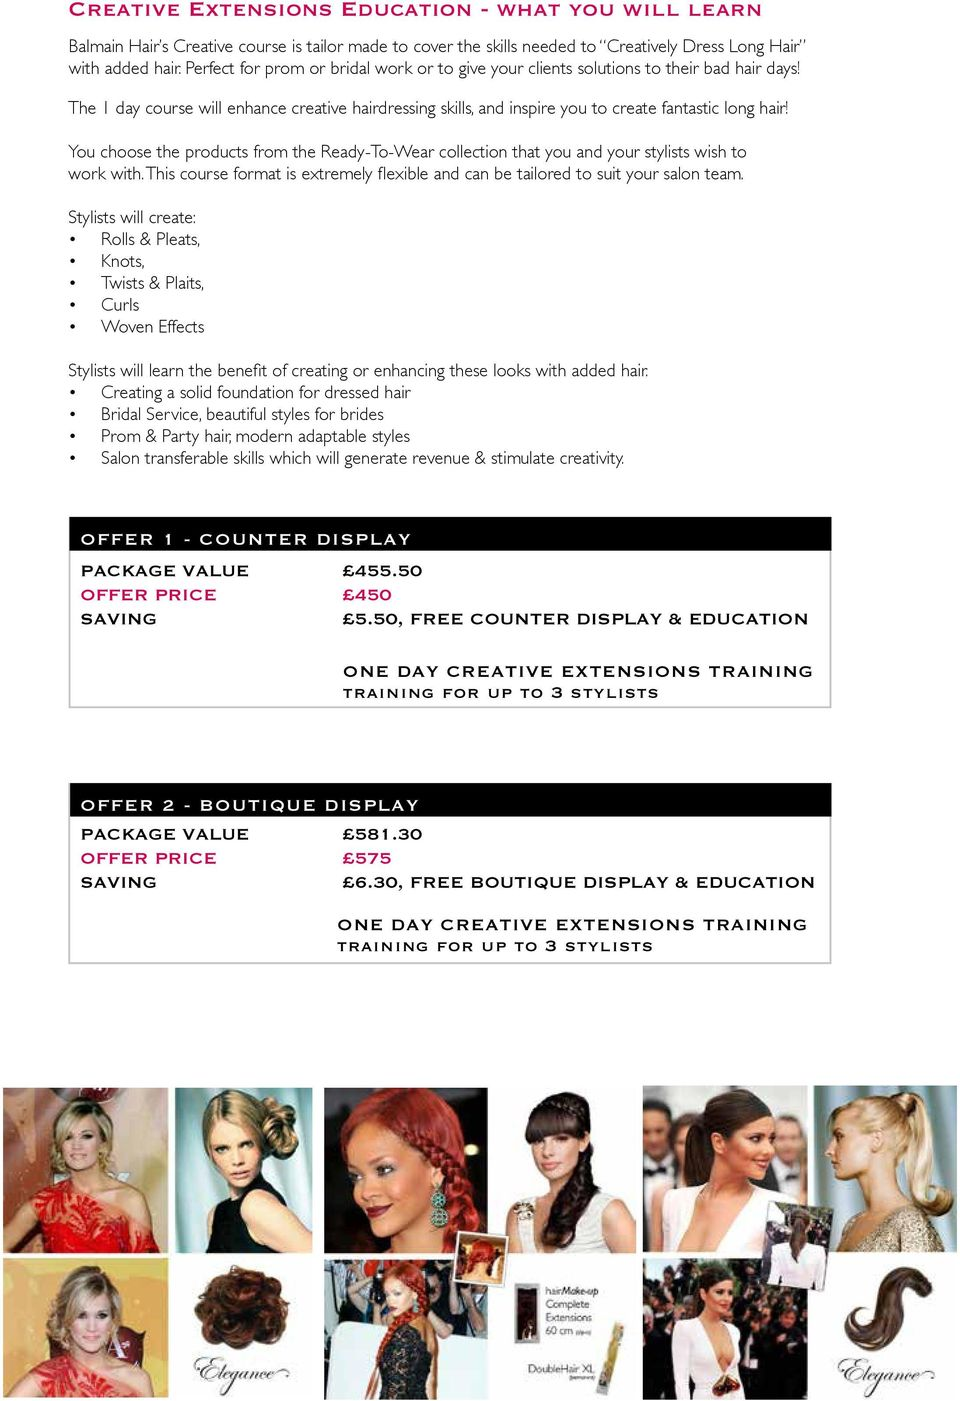 You choose the products from the Ready-To-Wear collection that you and your stylists wish to work with. This course format is extremely flexible and can be tailored to suit your salon team.